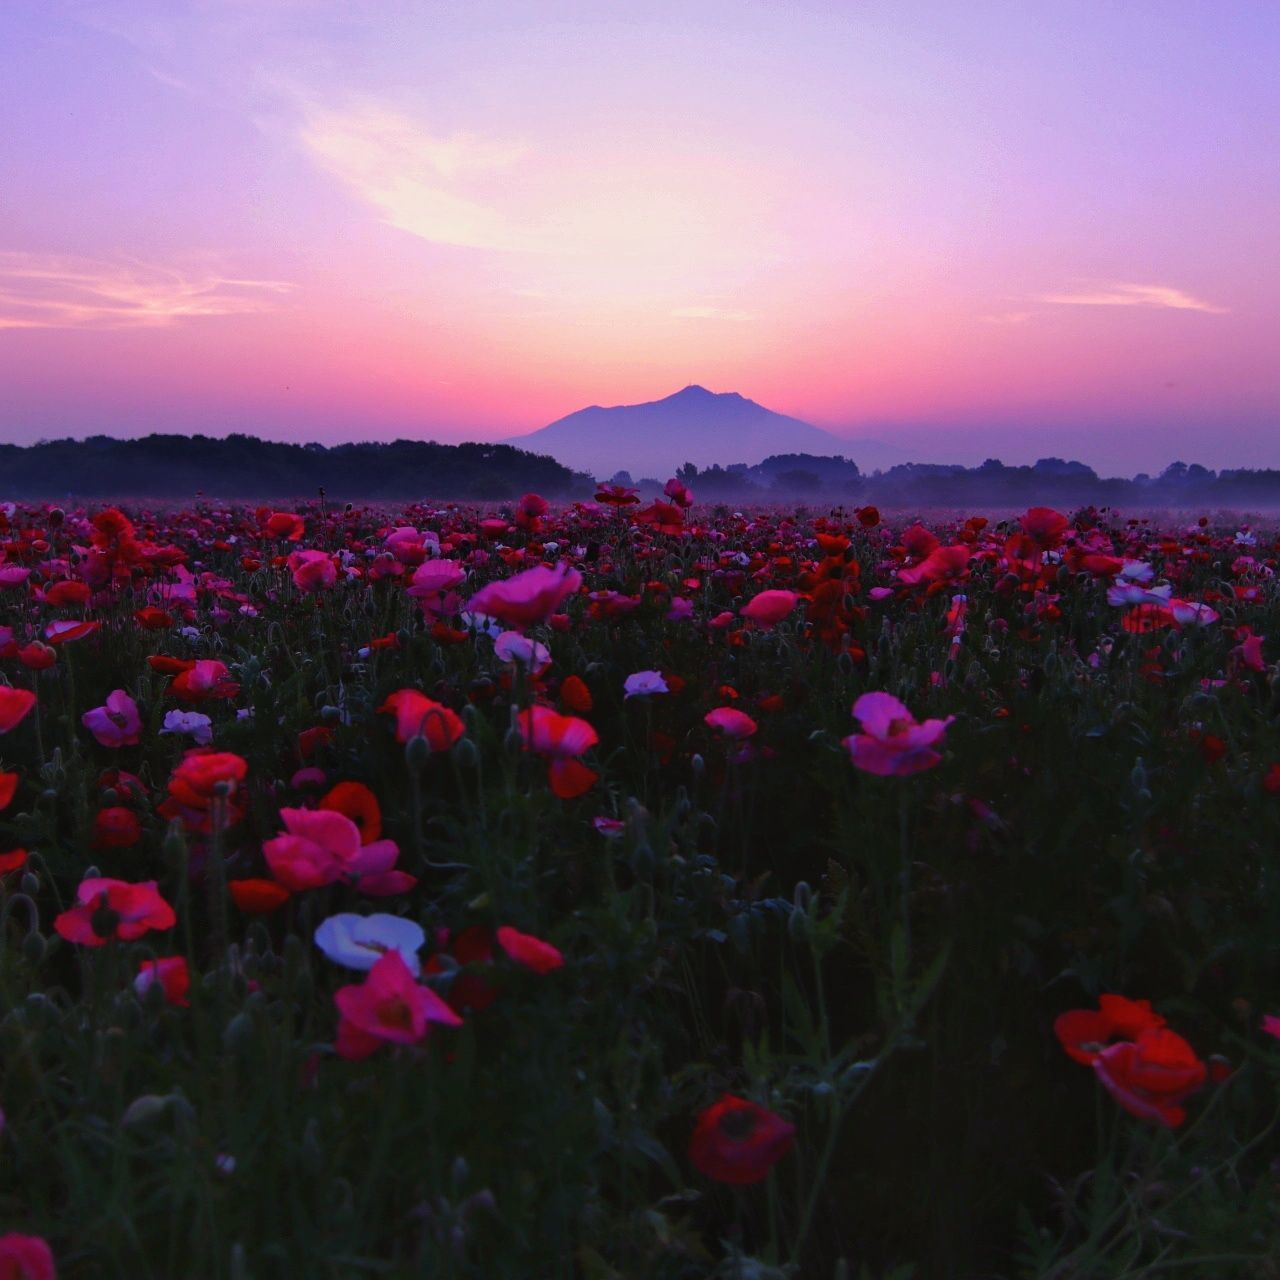 flower, nature, beauty in nature, growth, sunset, plant, tranquility, freshness, outdoors, sky, fragility, no people, field, purple, petal, scenics, tranquil scene, blooming, pink color, flower head, landscape, day